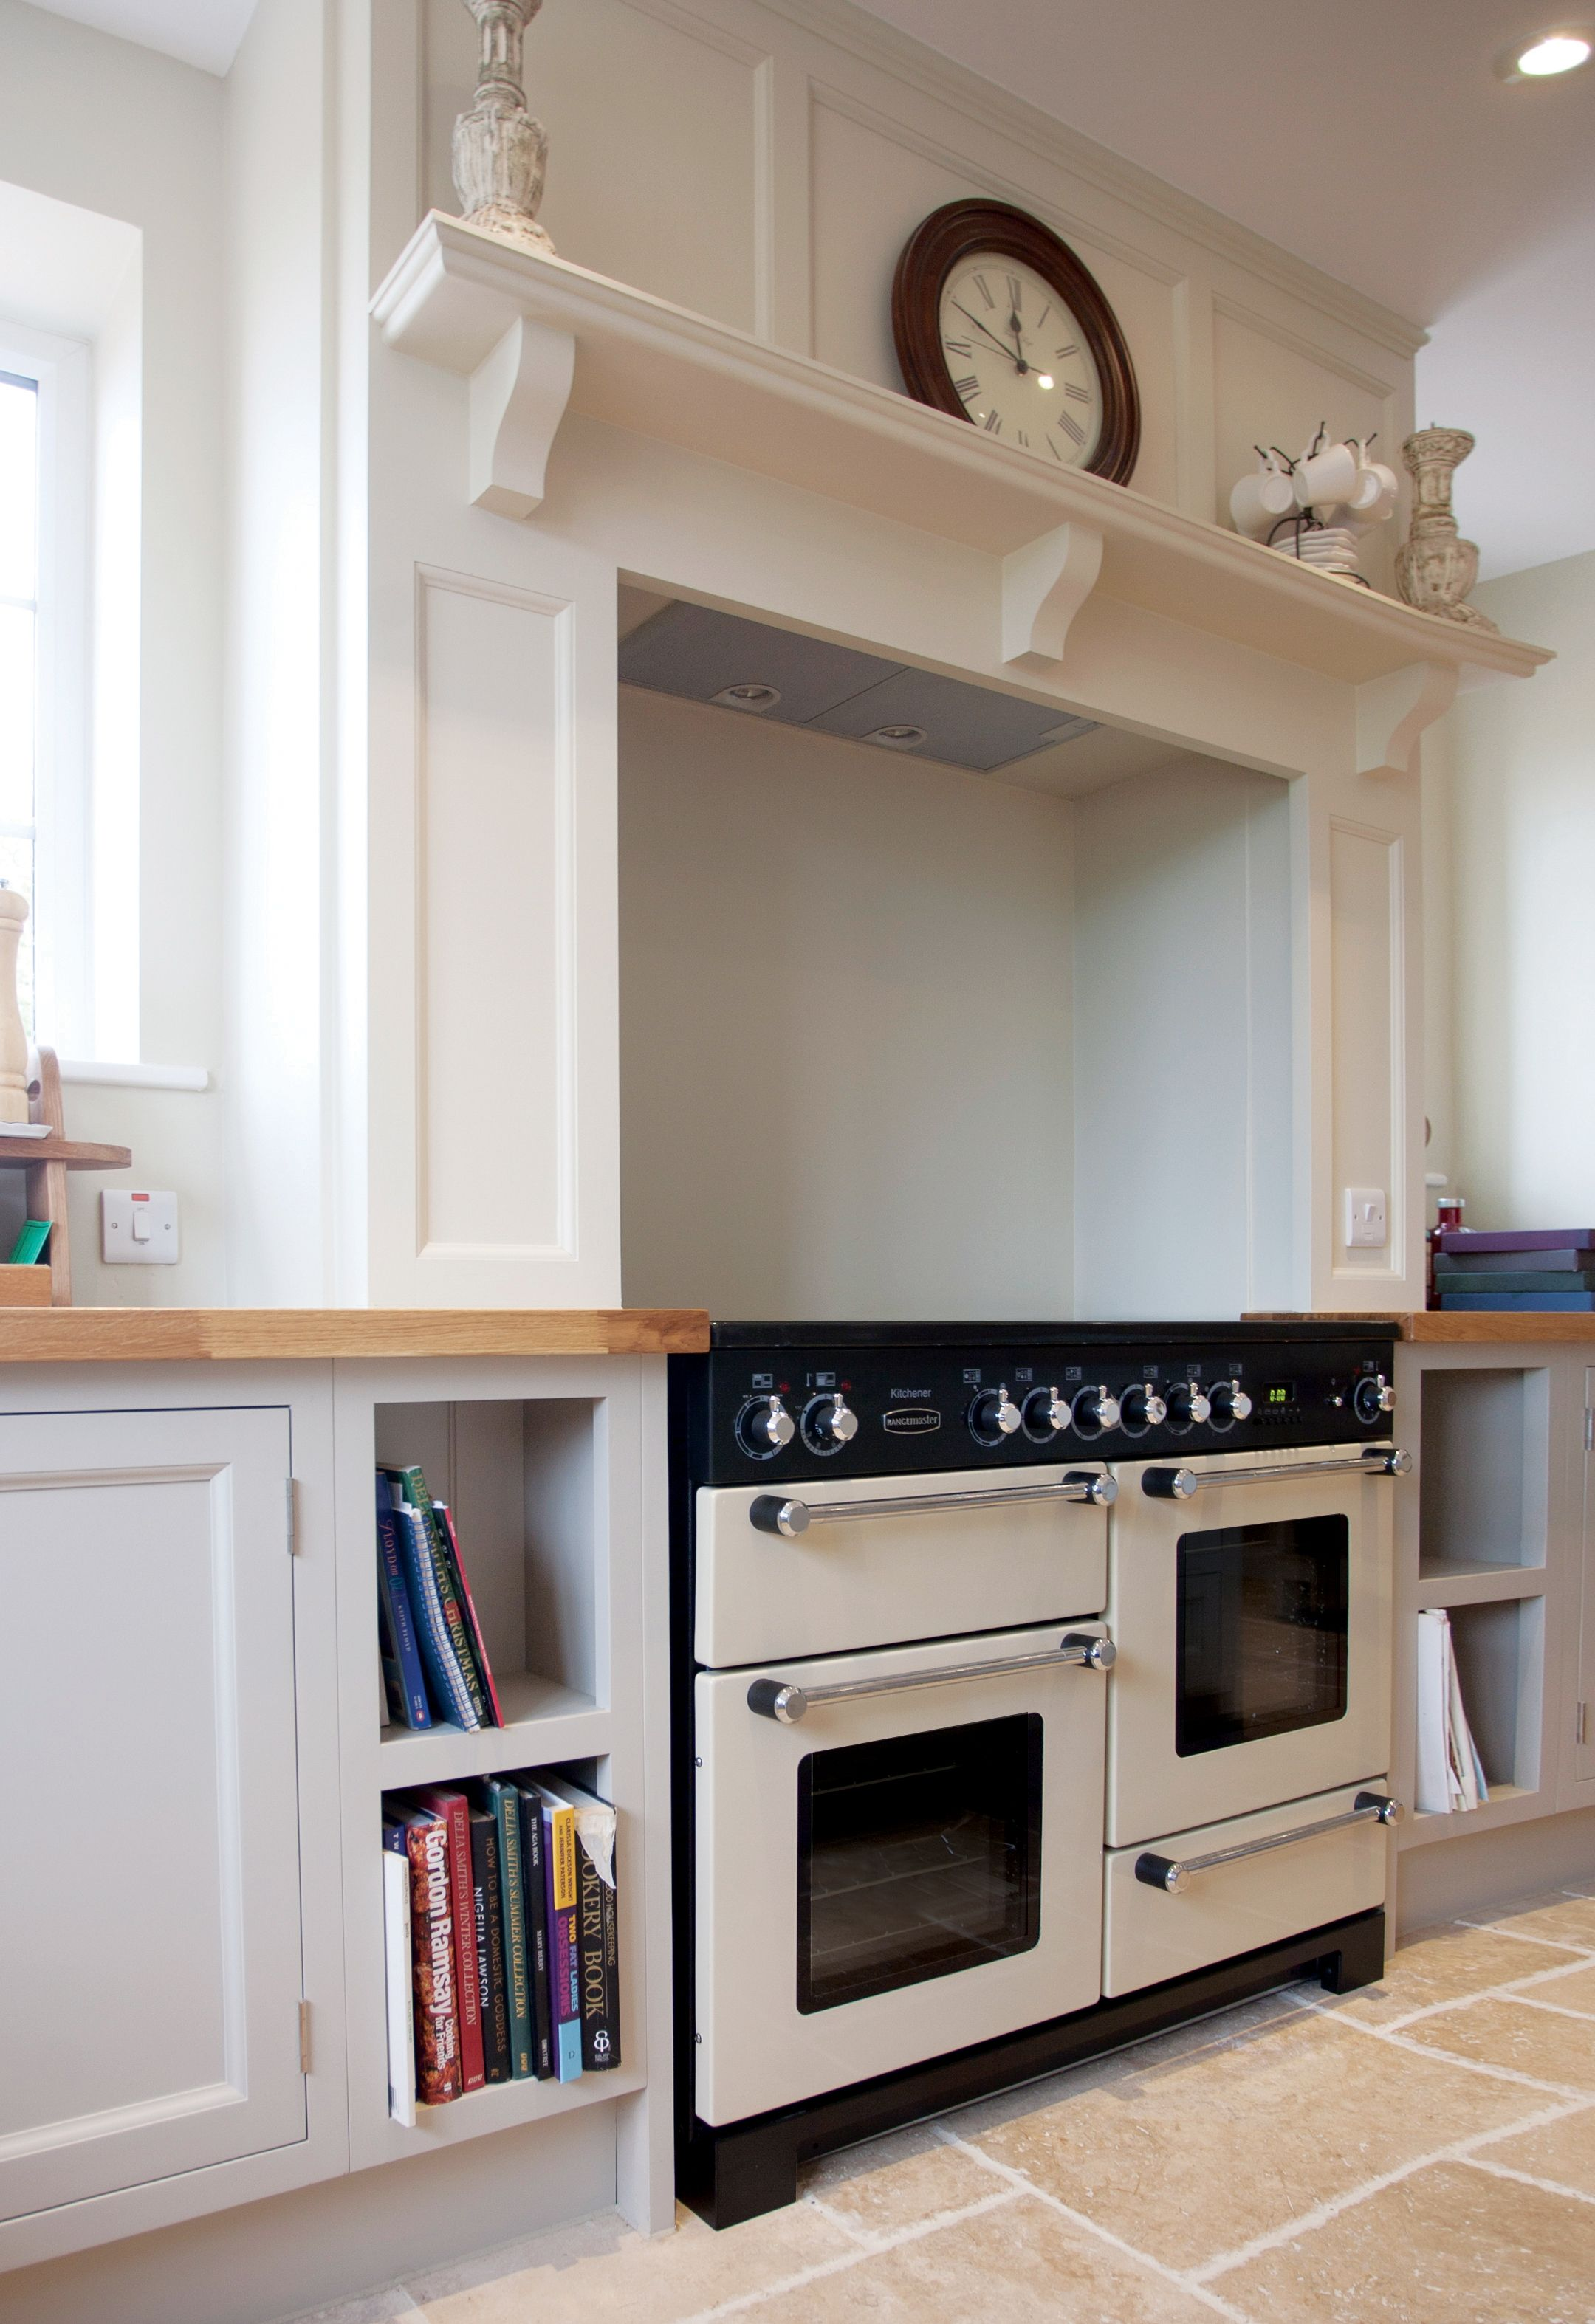 kitchen interiors designs the kitchener was invented in 1830 and was the 1830